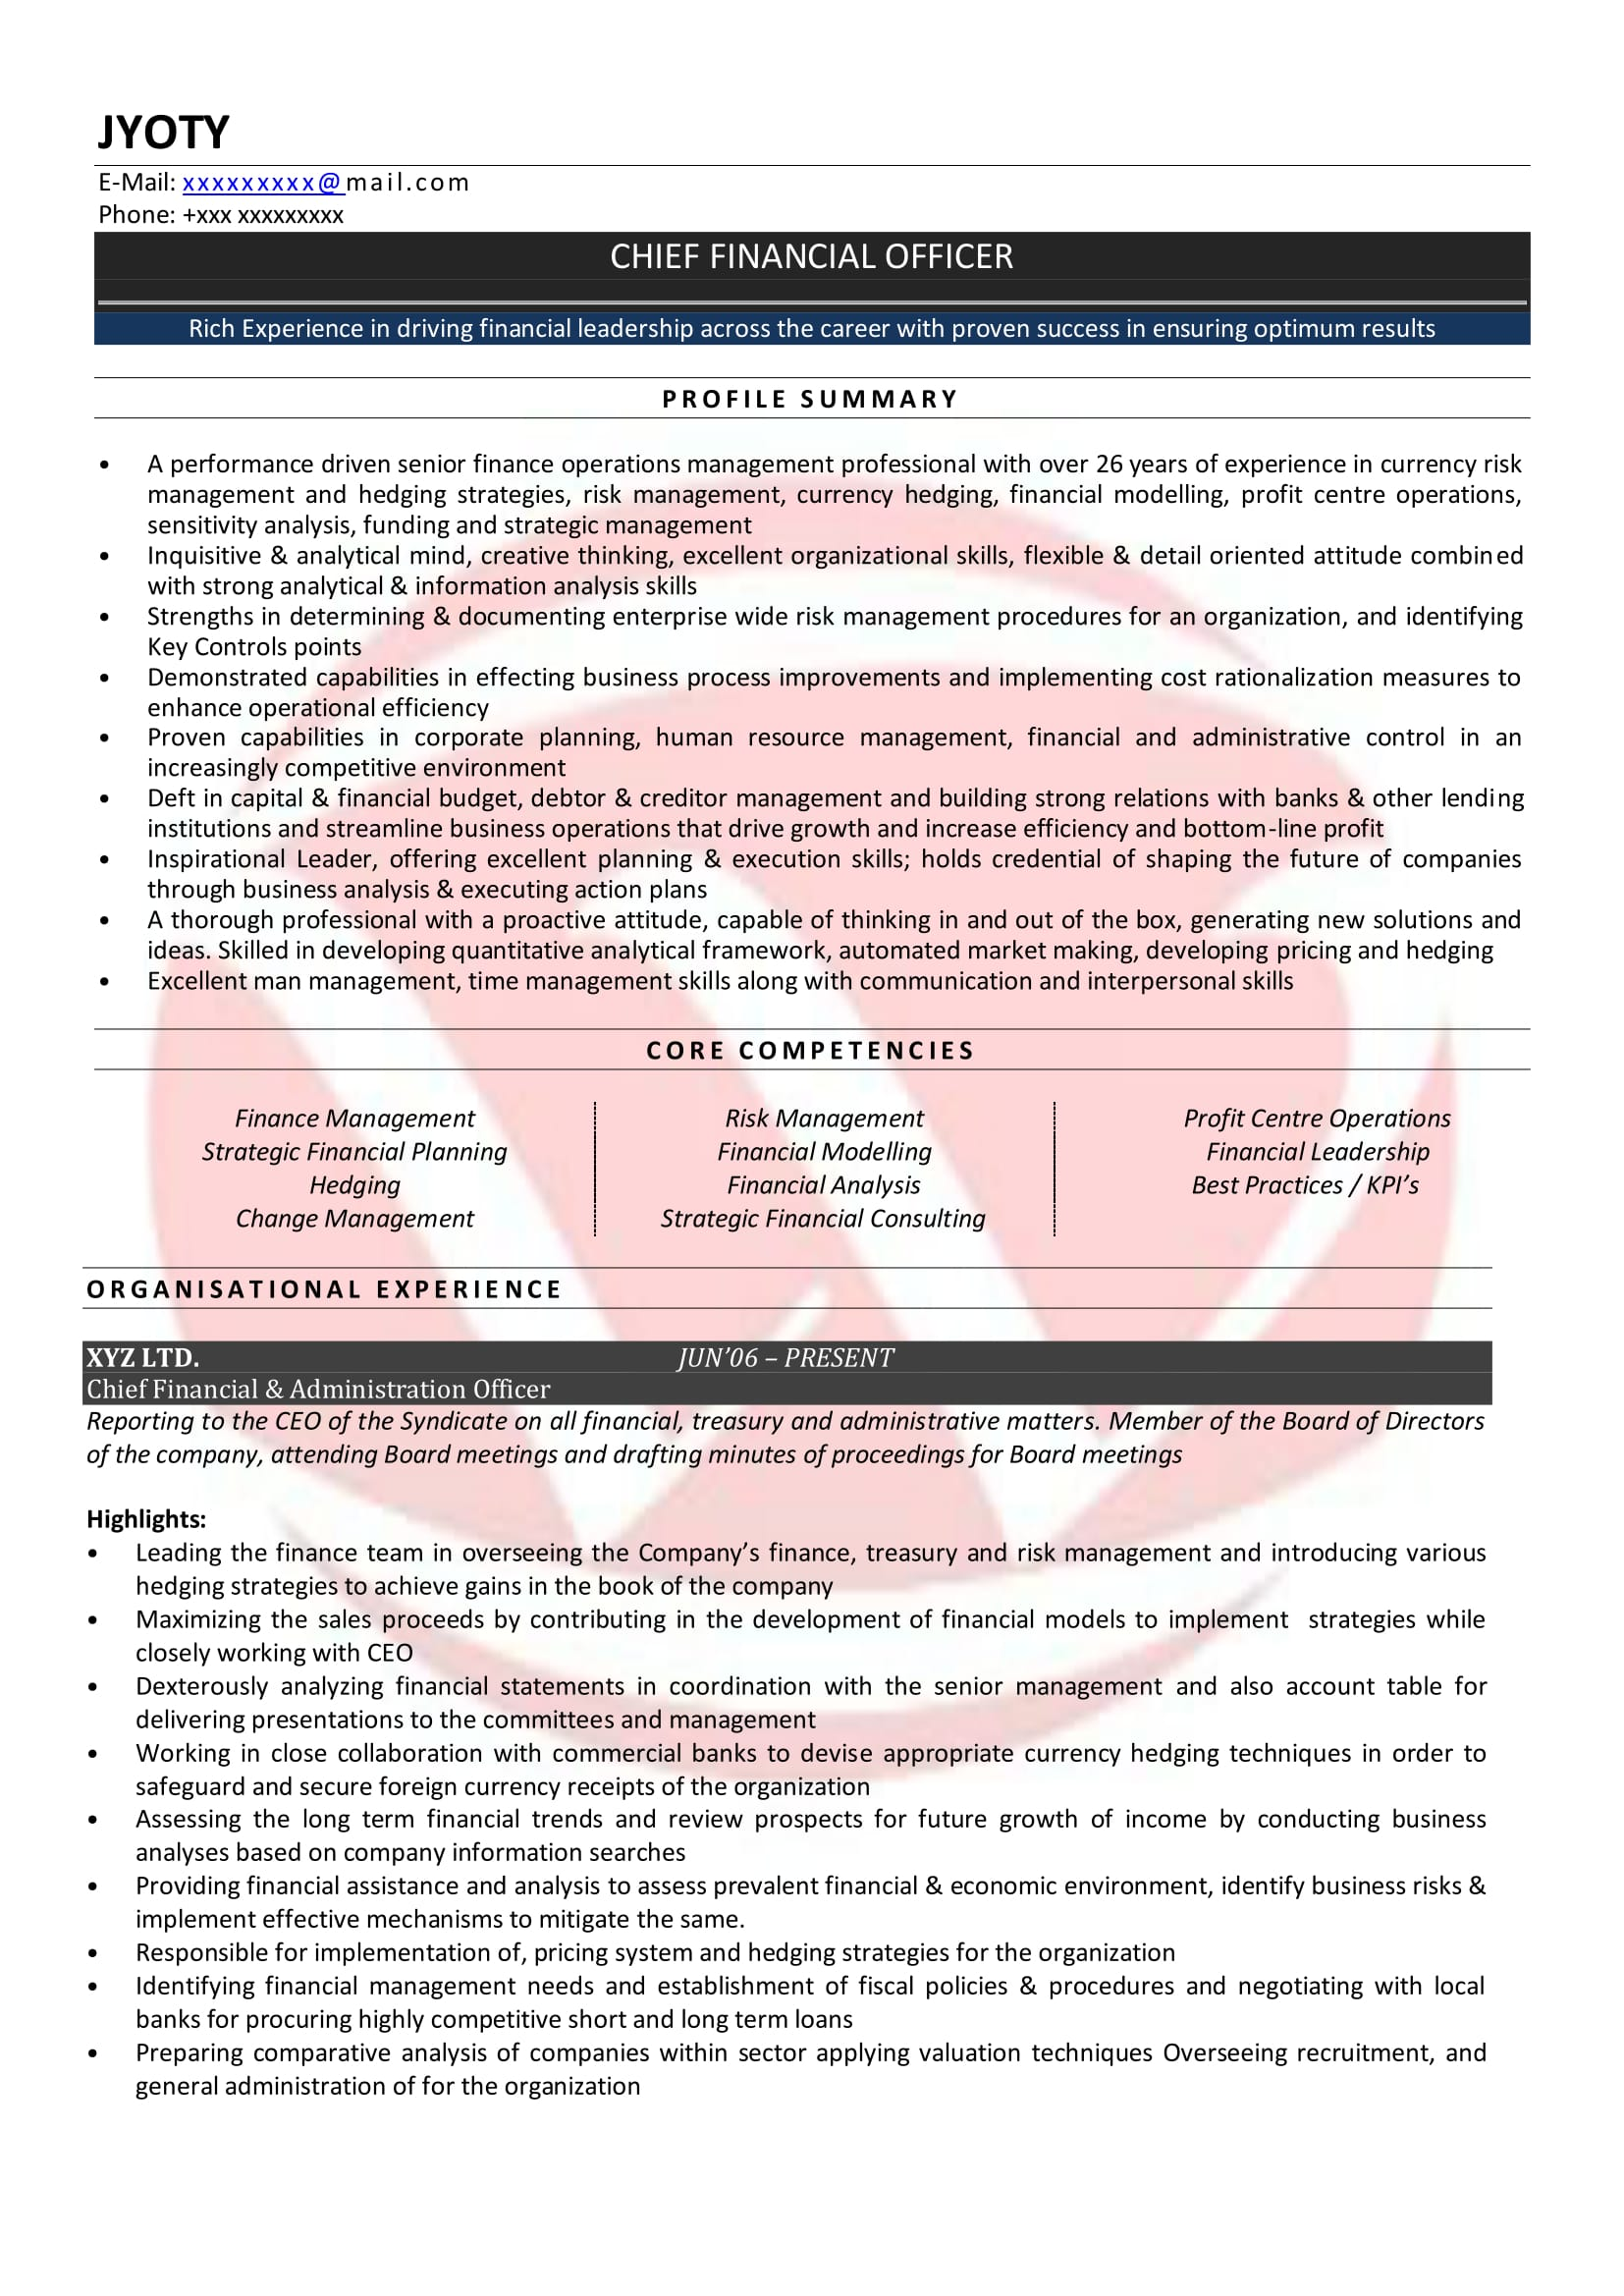 sample resumes resume format templates of experienced chartered accountant web developer Resume Resume Of Experienced Chartered Accountant